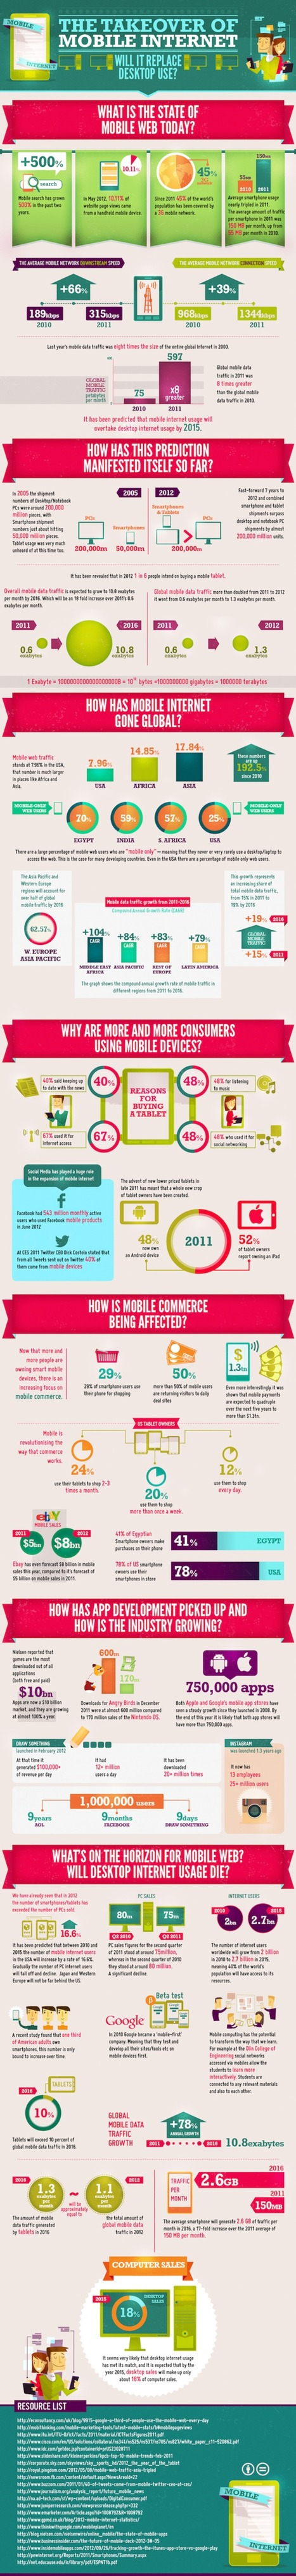 Will mobile internet replace desktop? [infographic] | Communication Today | Scoop.it